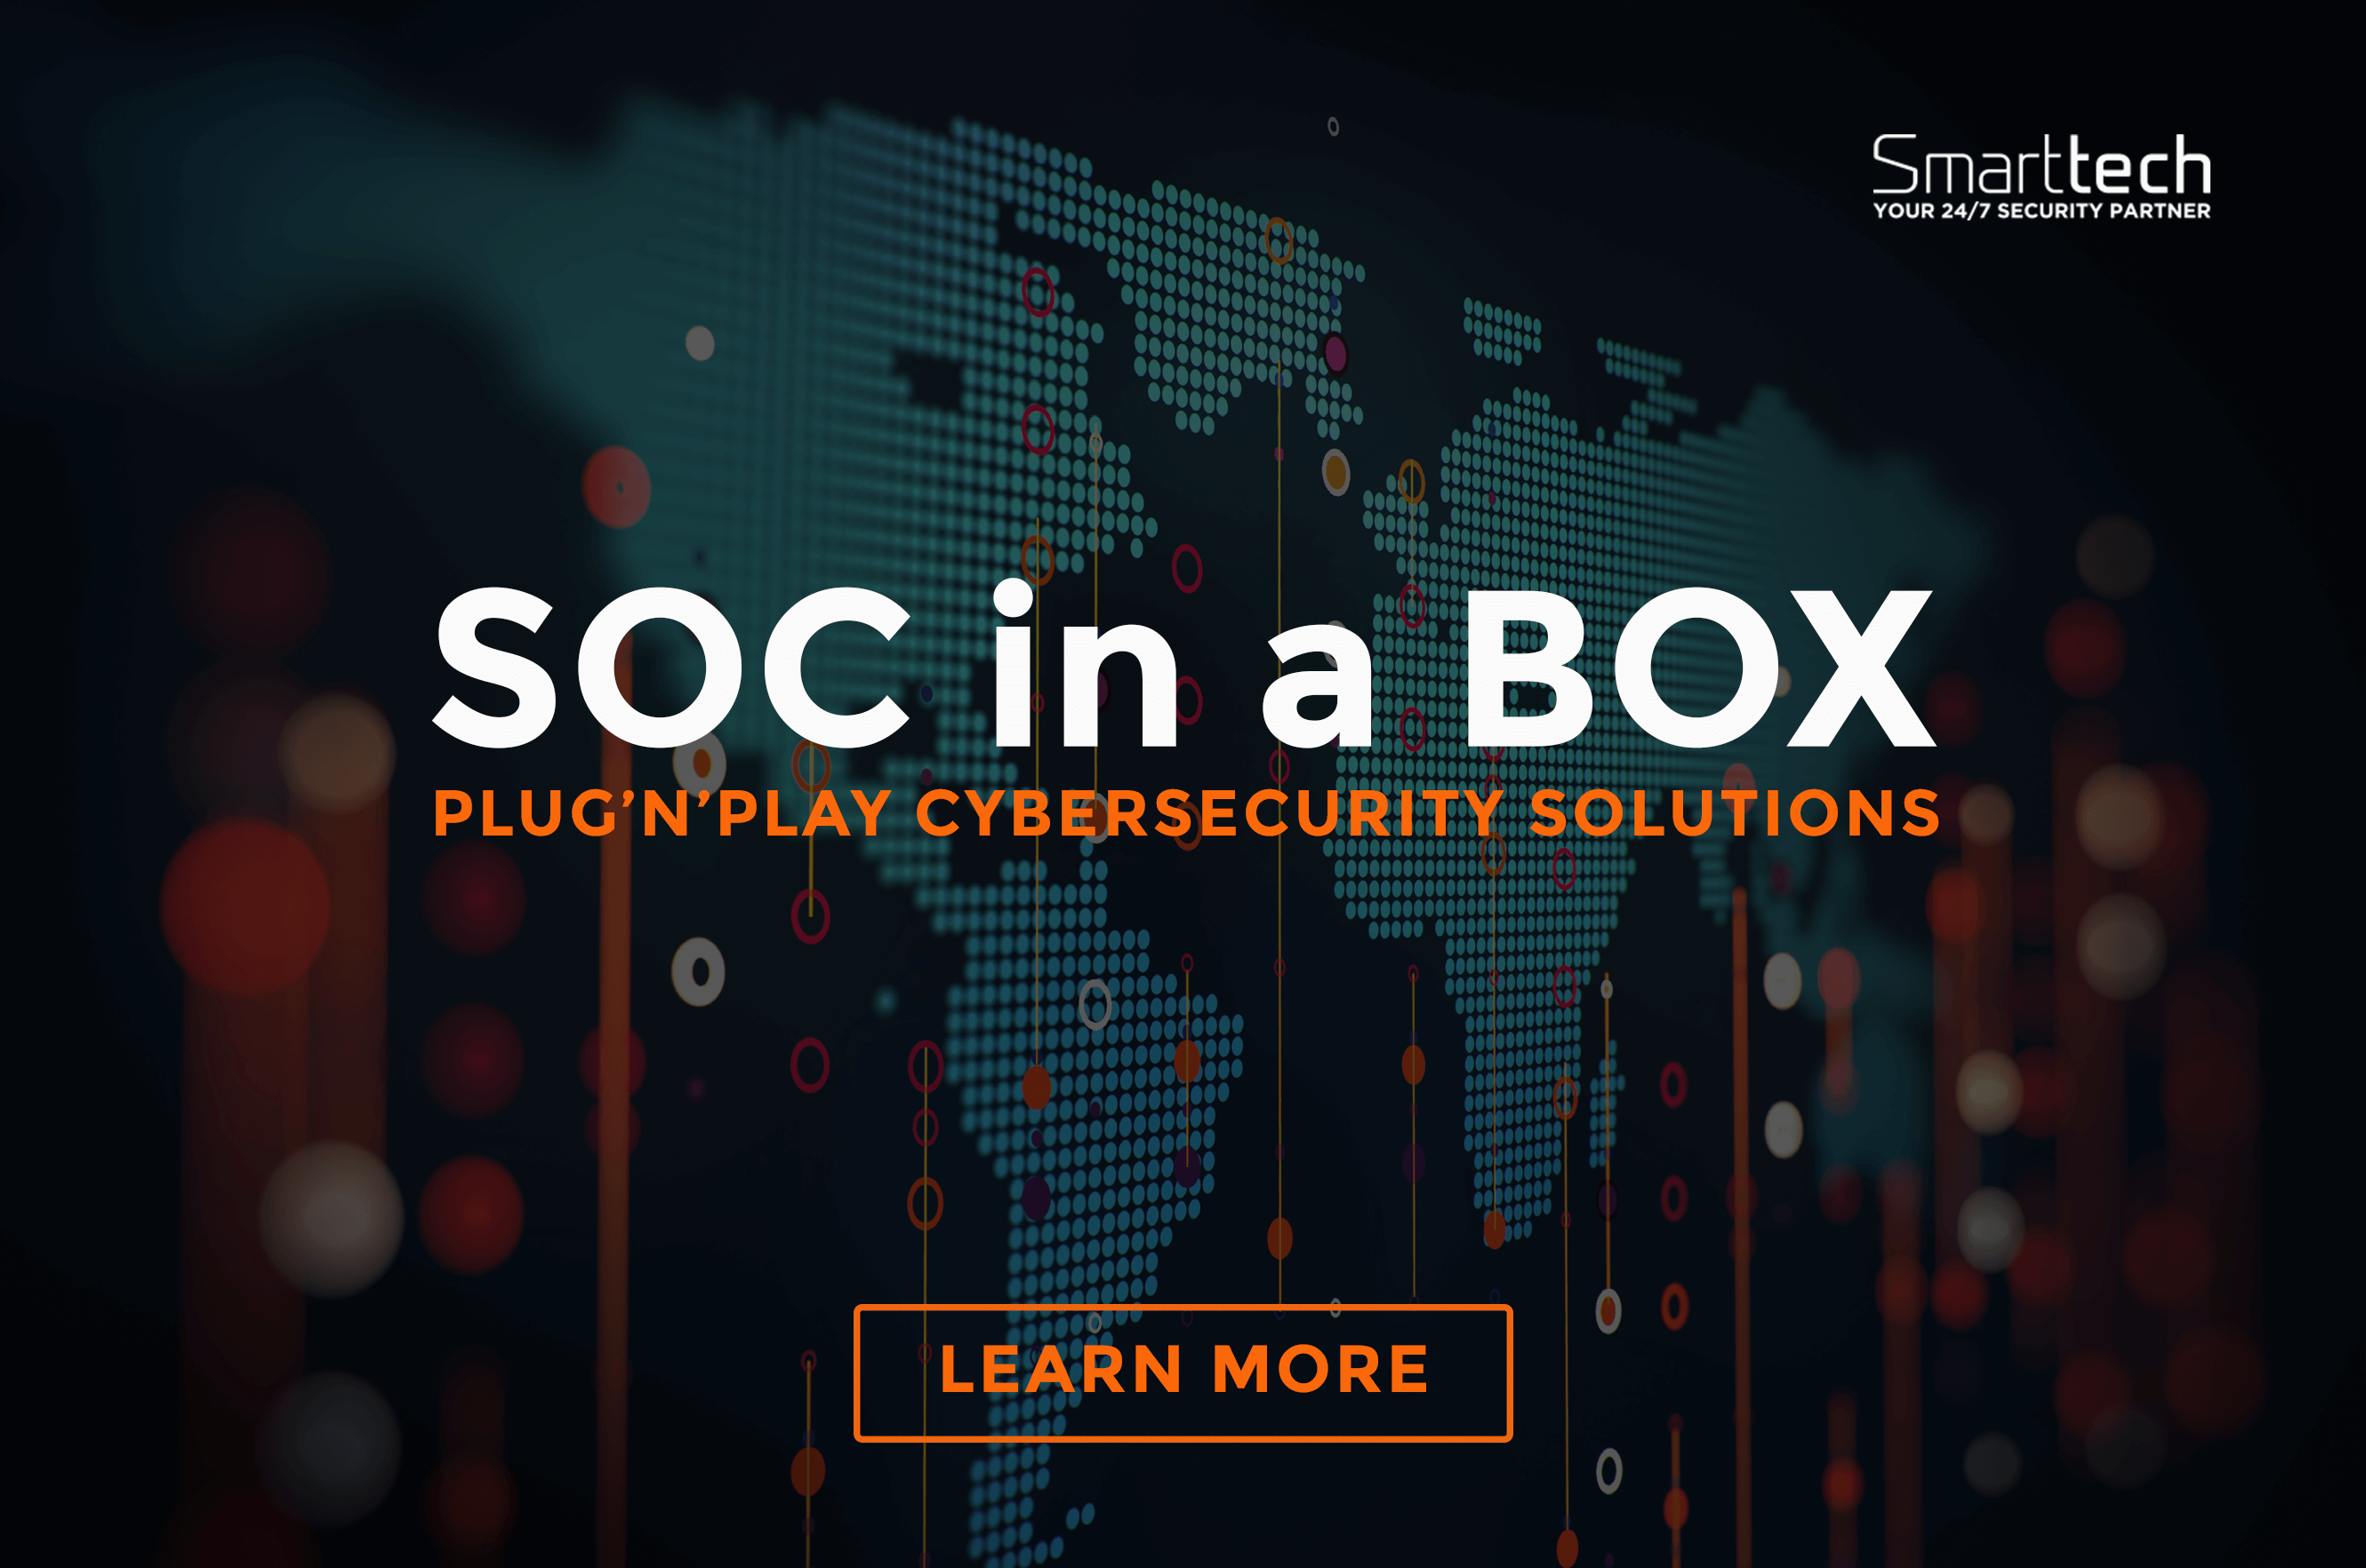 Soc In A Box Plug And Play Cyber Security Solutions